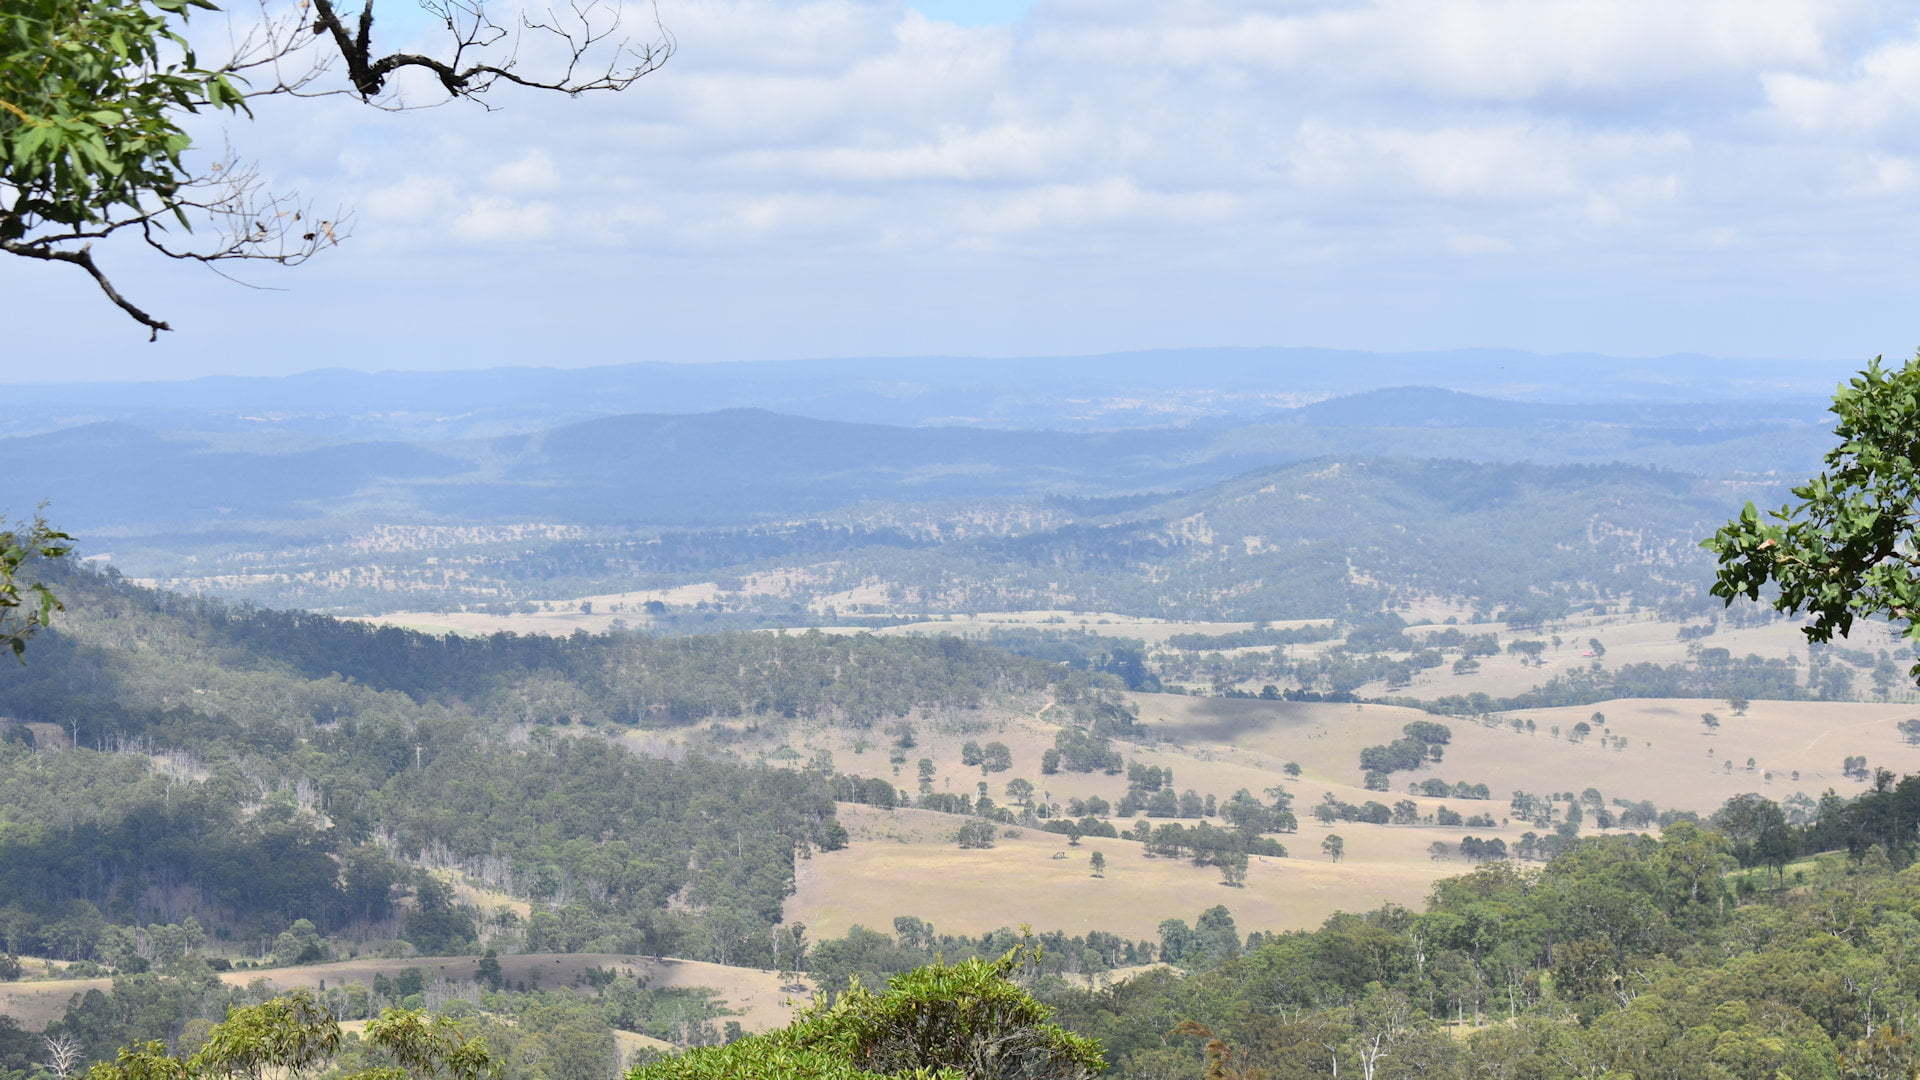 View from Tooloom Lookout on the edge of Tooloom National Park